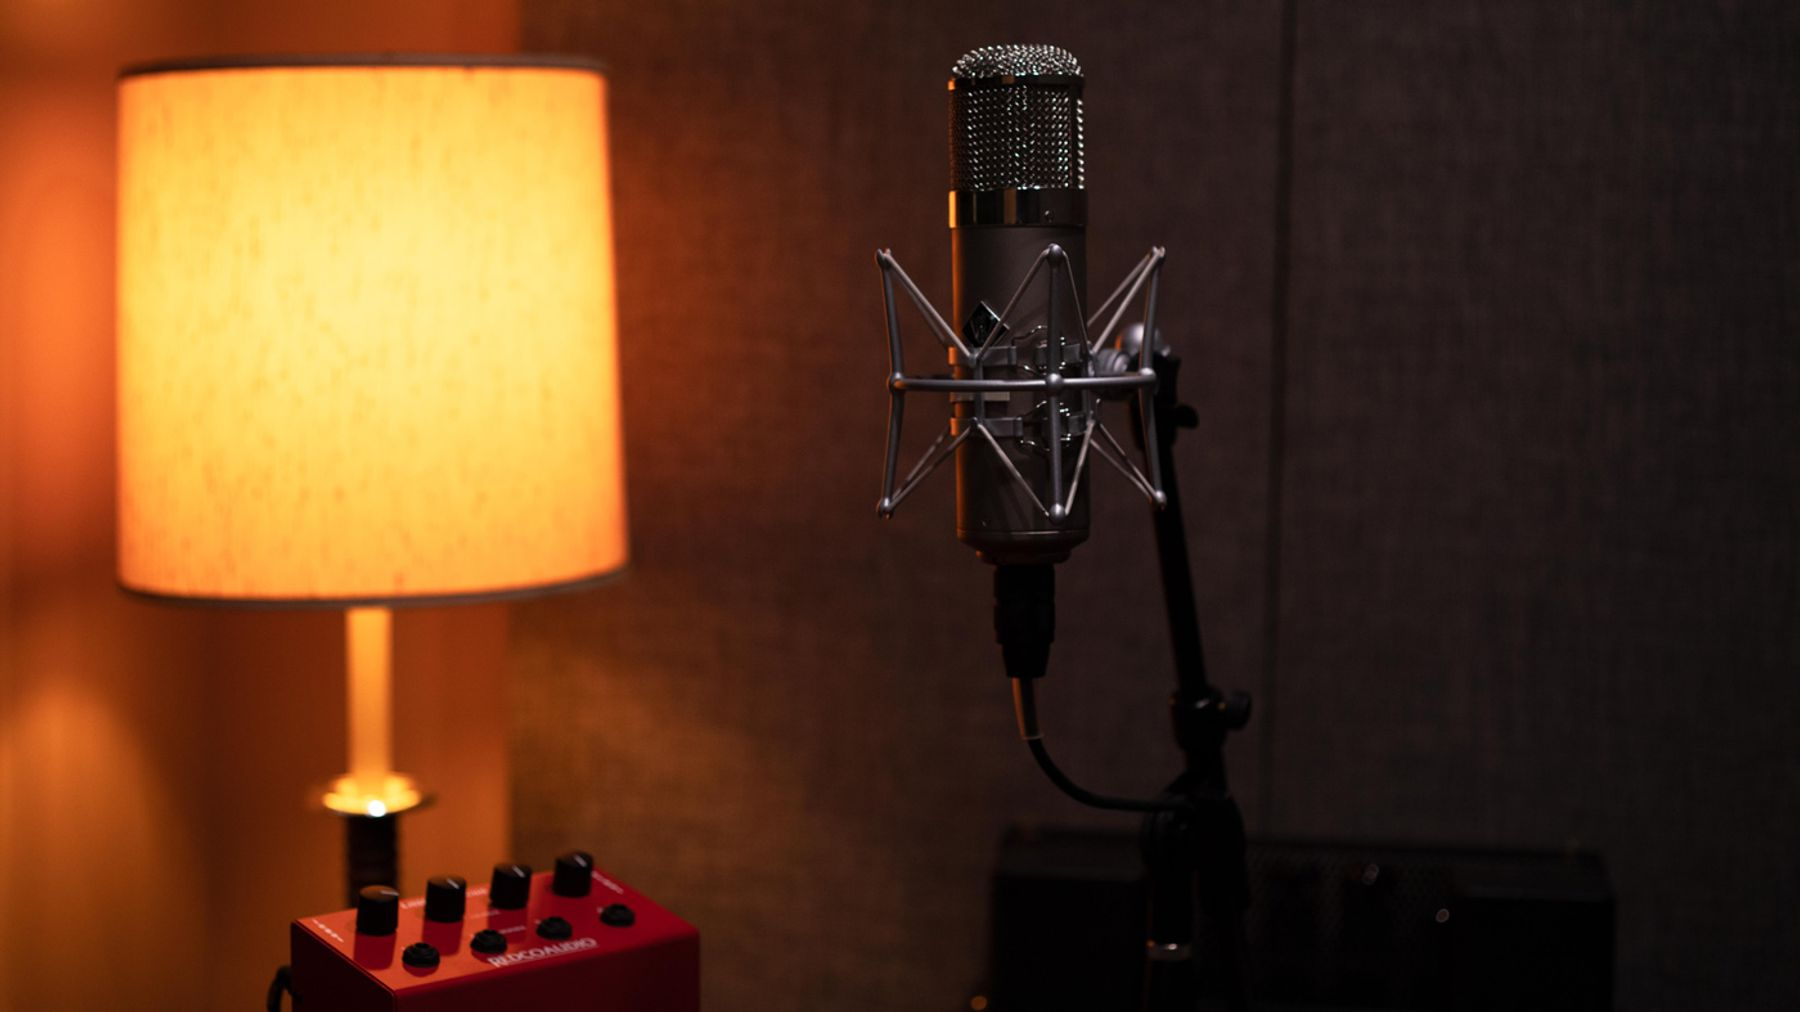 A Neumann U87 microphone on a micstand in the recording sound booth